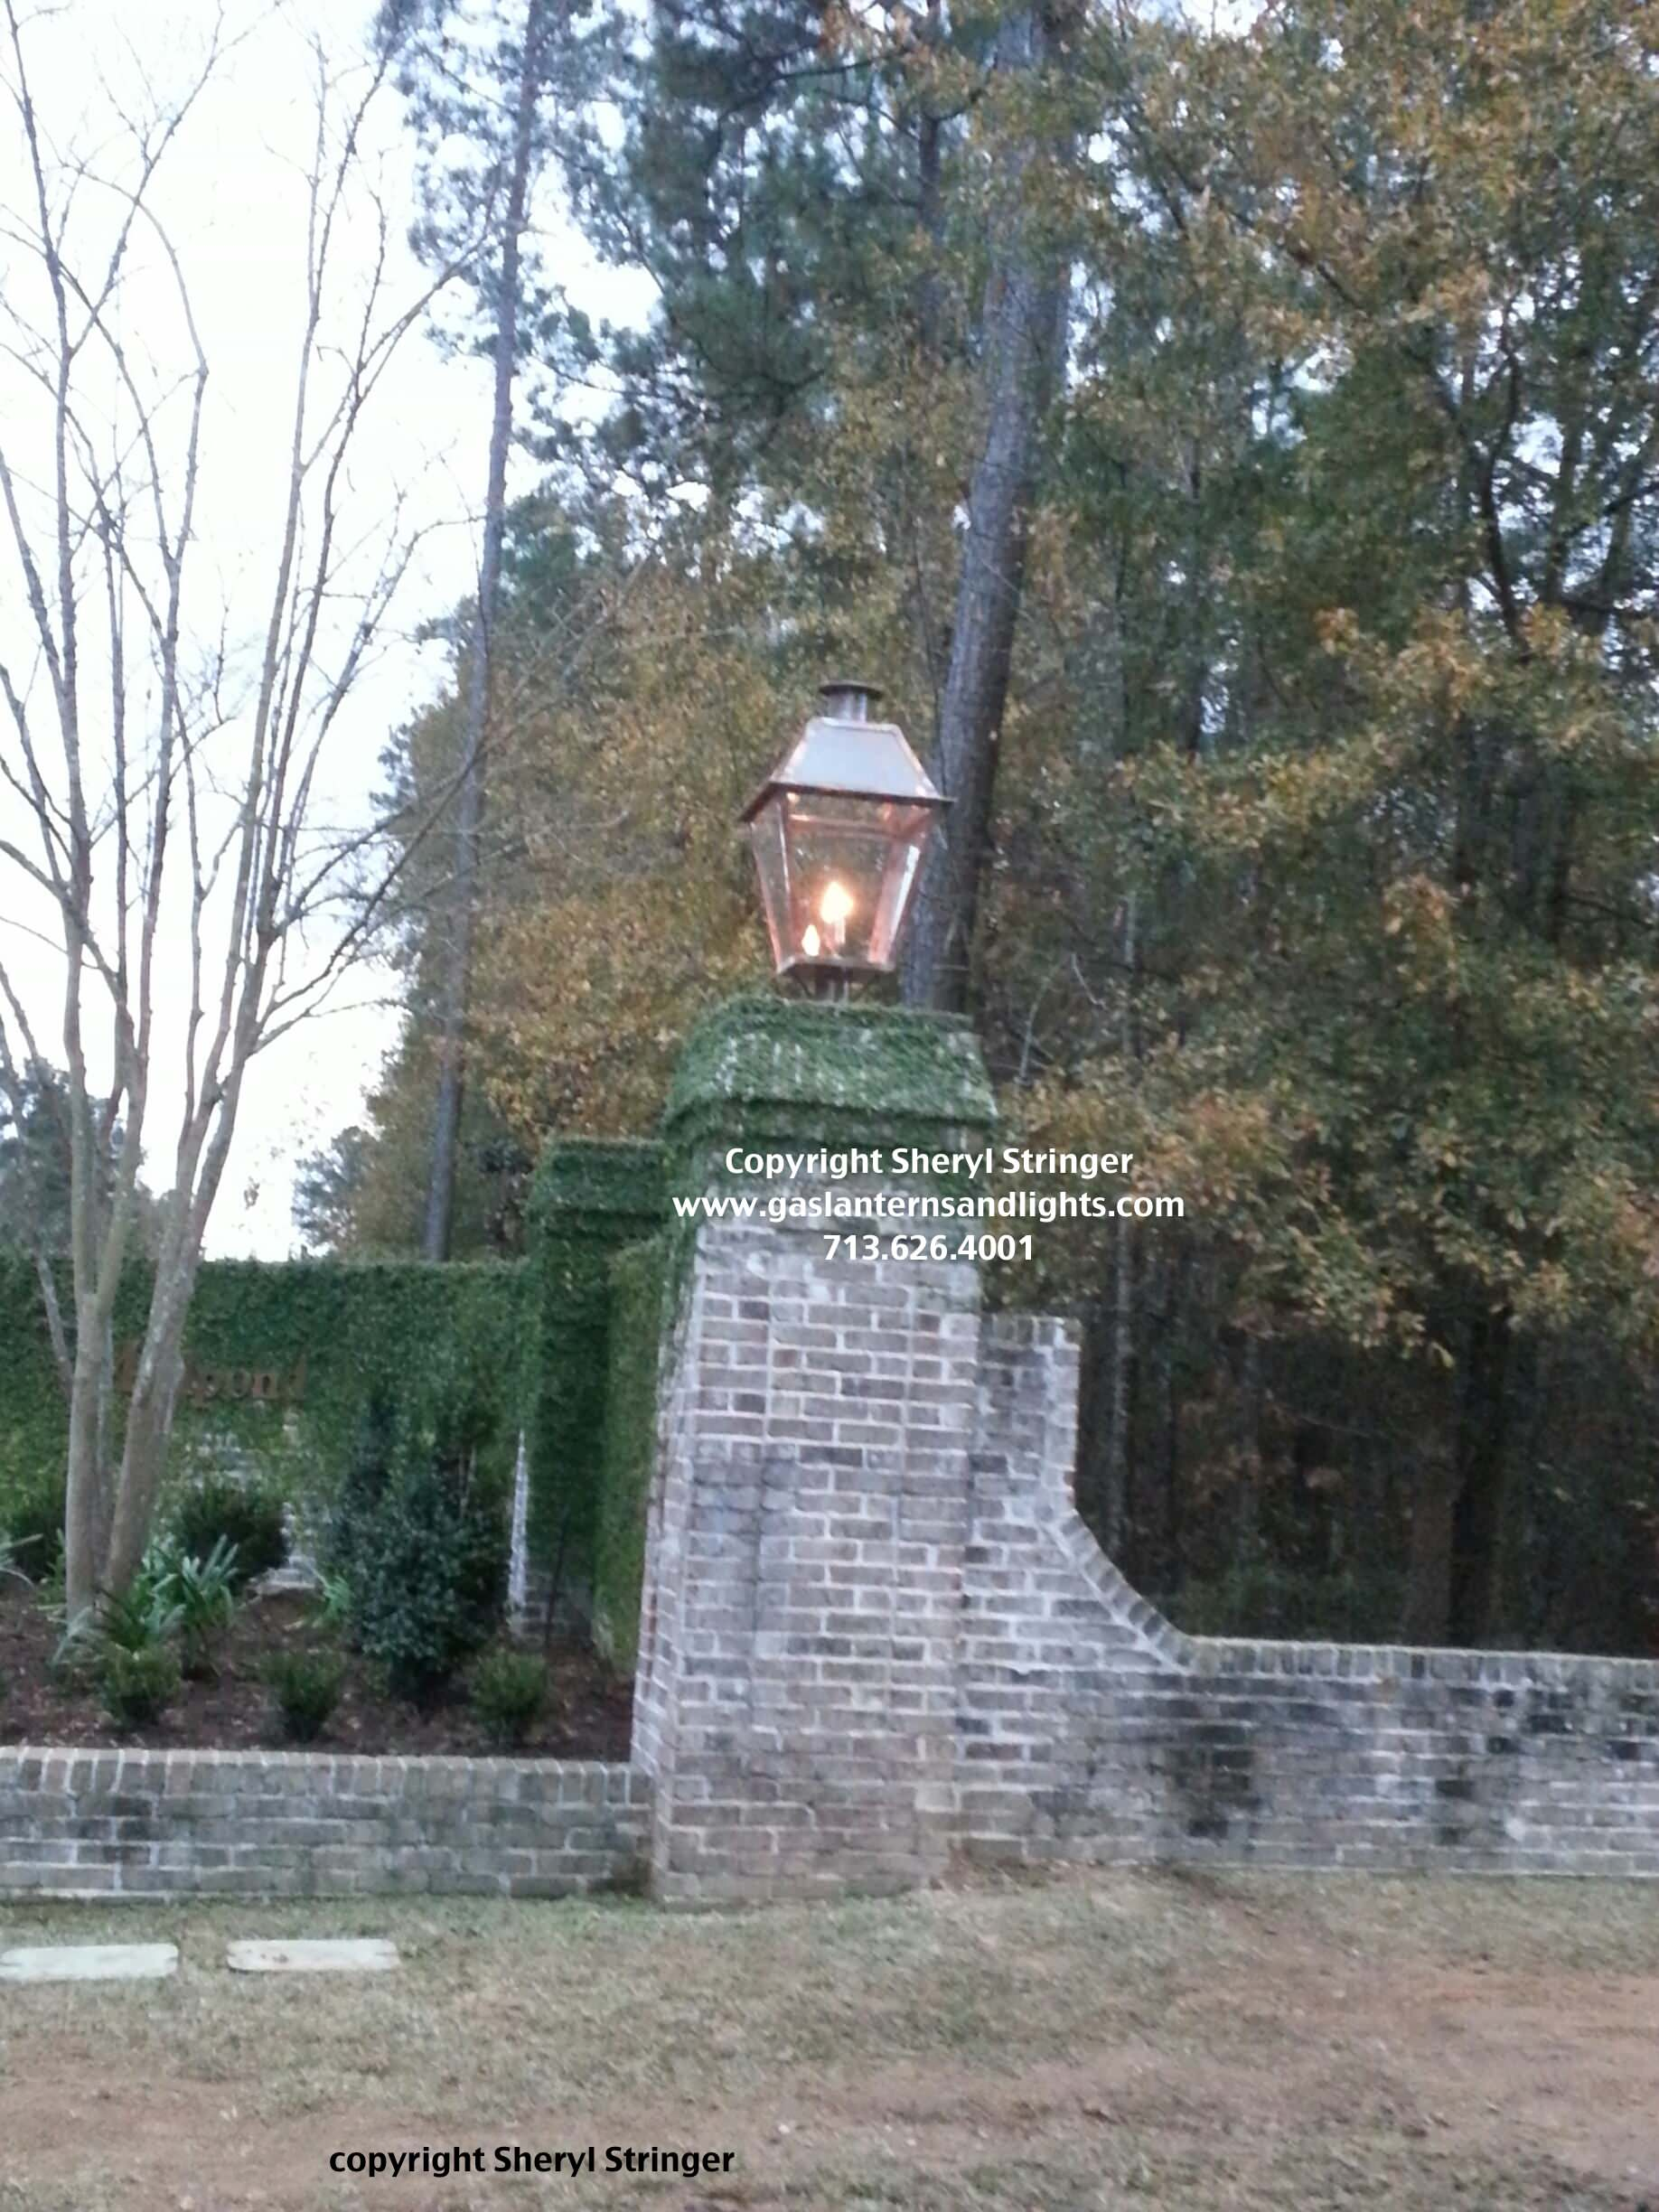 Sheryl's Extra Large New Orleans Style Gas Lanterns On Columns